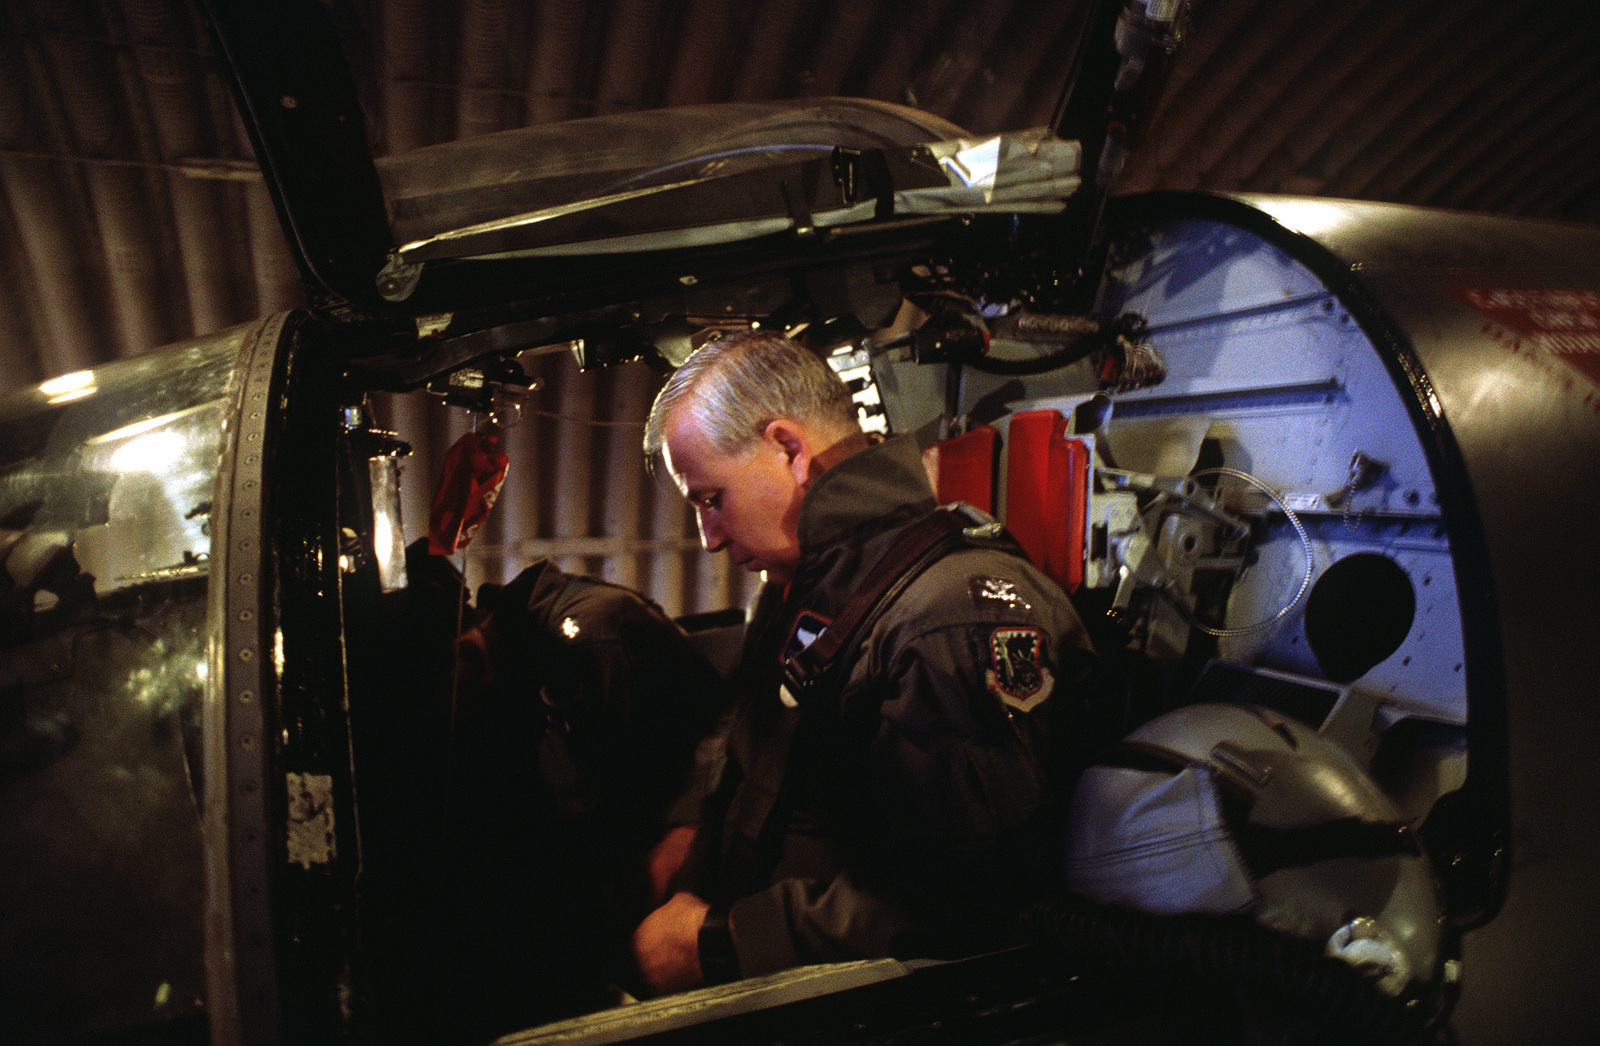 COL. Tom Lennon, 48th Tactical Fighter Wing commanding officer, checks his flight gear in the cockpit of an F-111F aircraft as he prepares to deploy to Saudi Arabia in support of Operation Desert Shield